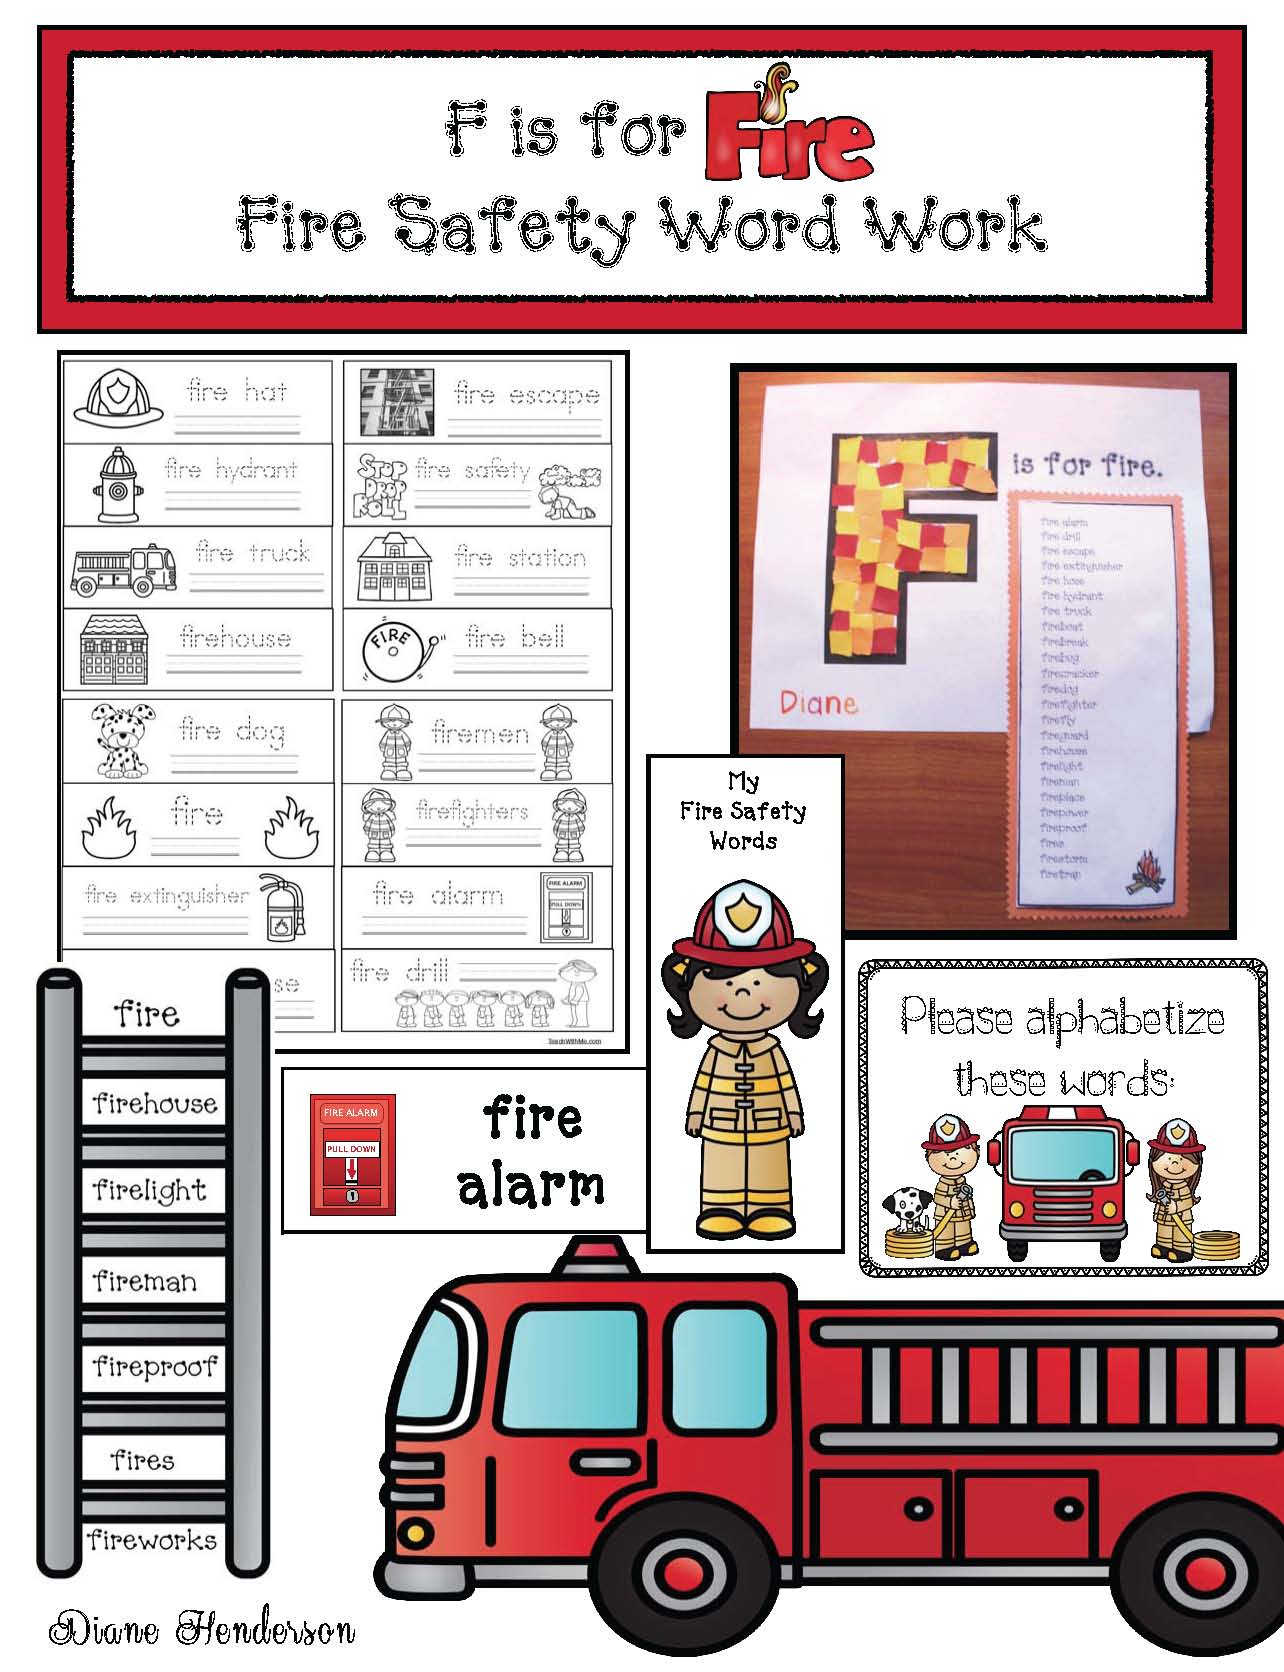 fire safety activities, fires safety crafts, fires safety words, fire safety writing prompts, fire safety bulletin boards